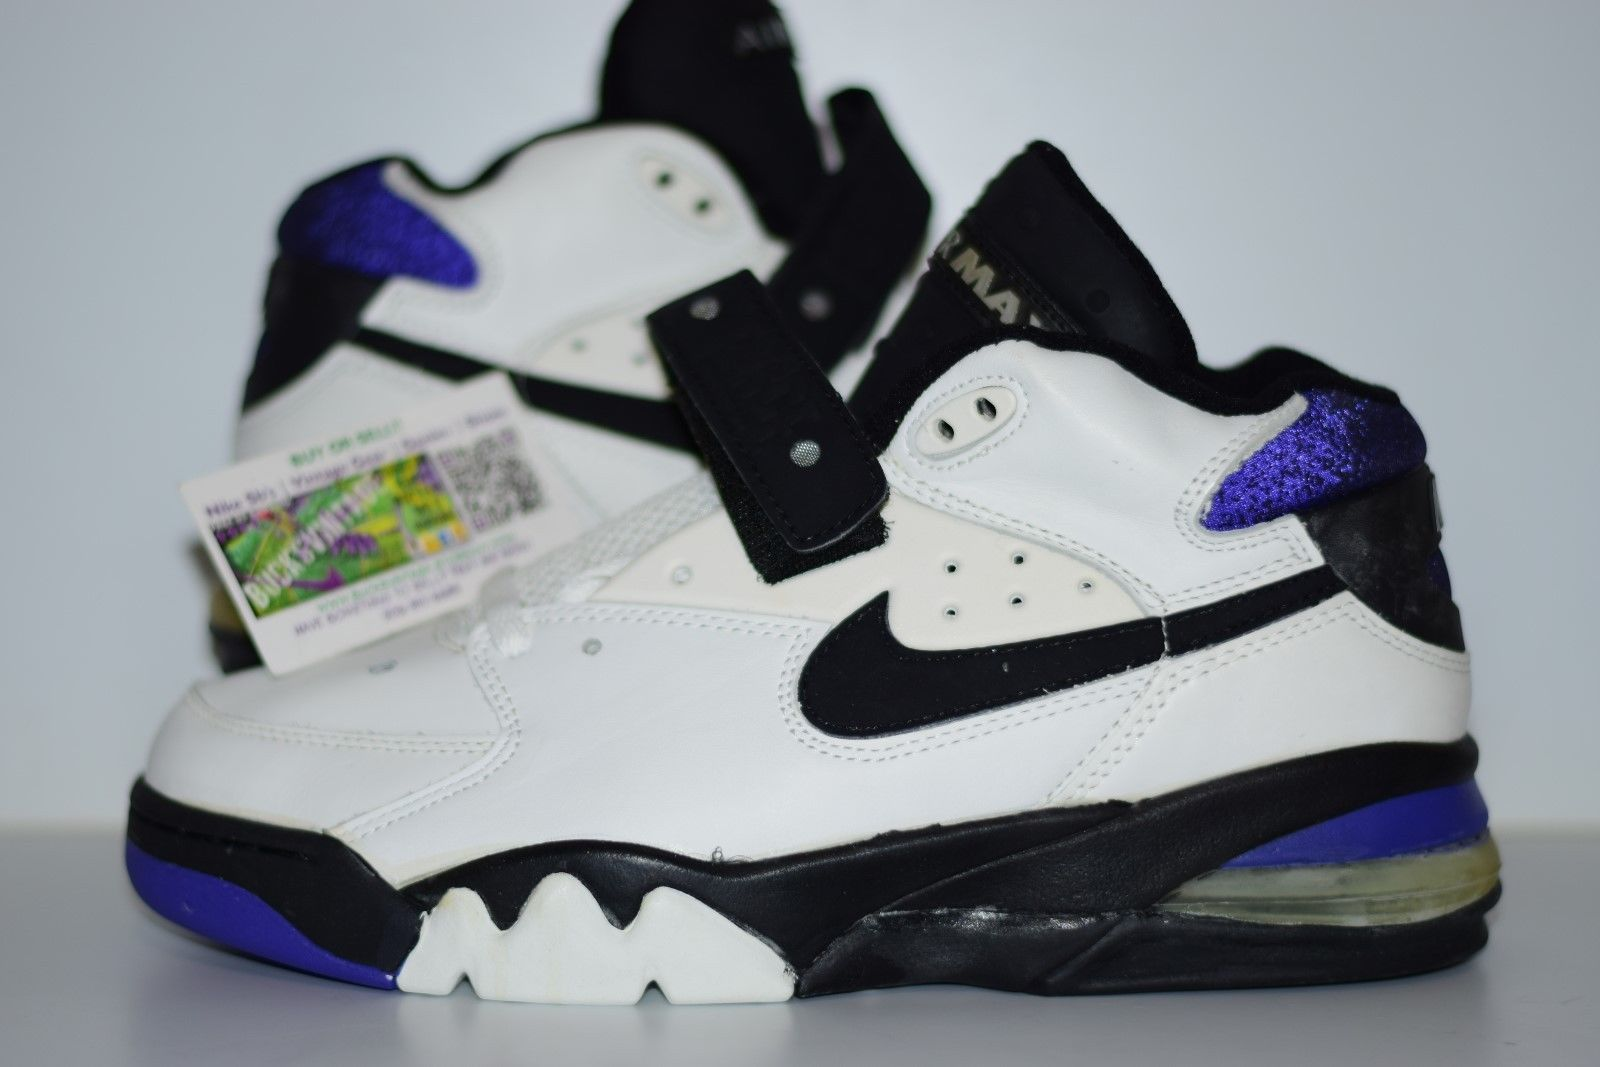 size 10 og 1993 nike air force max cb cobalt suns. Black Bedroom Furniture Sets. Home Design Ideas